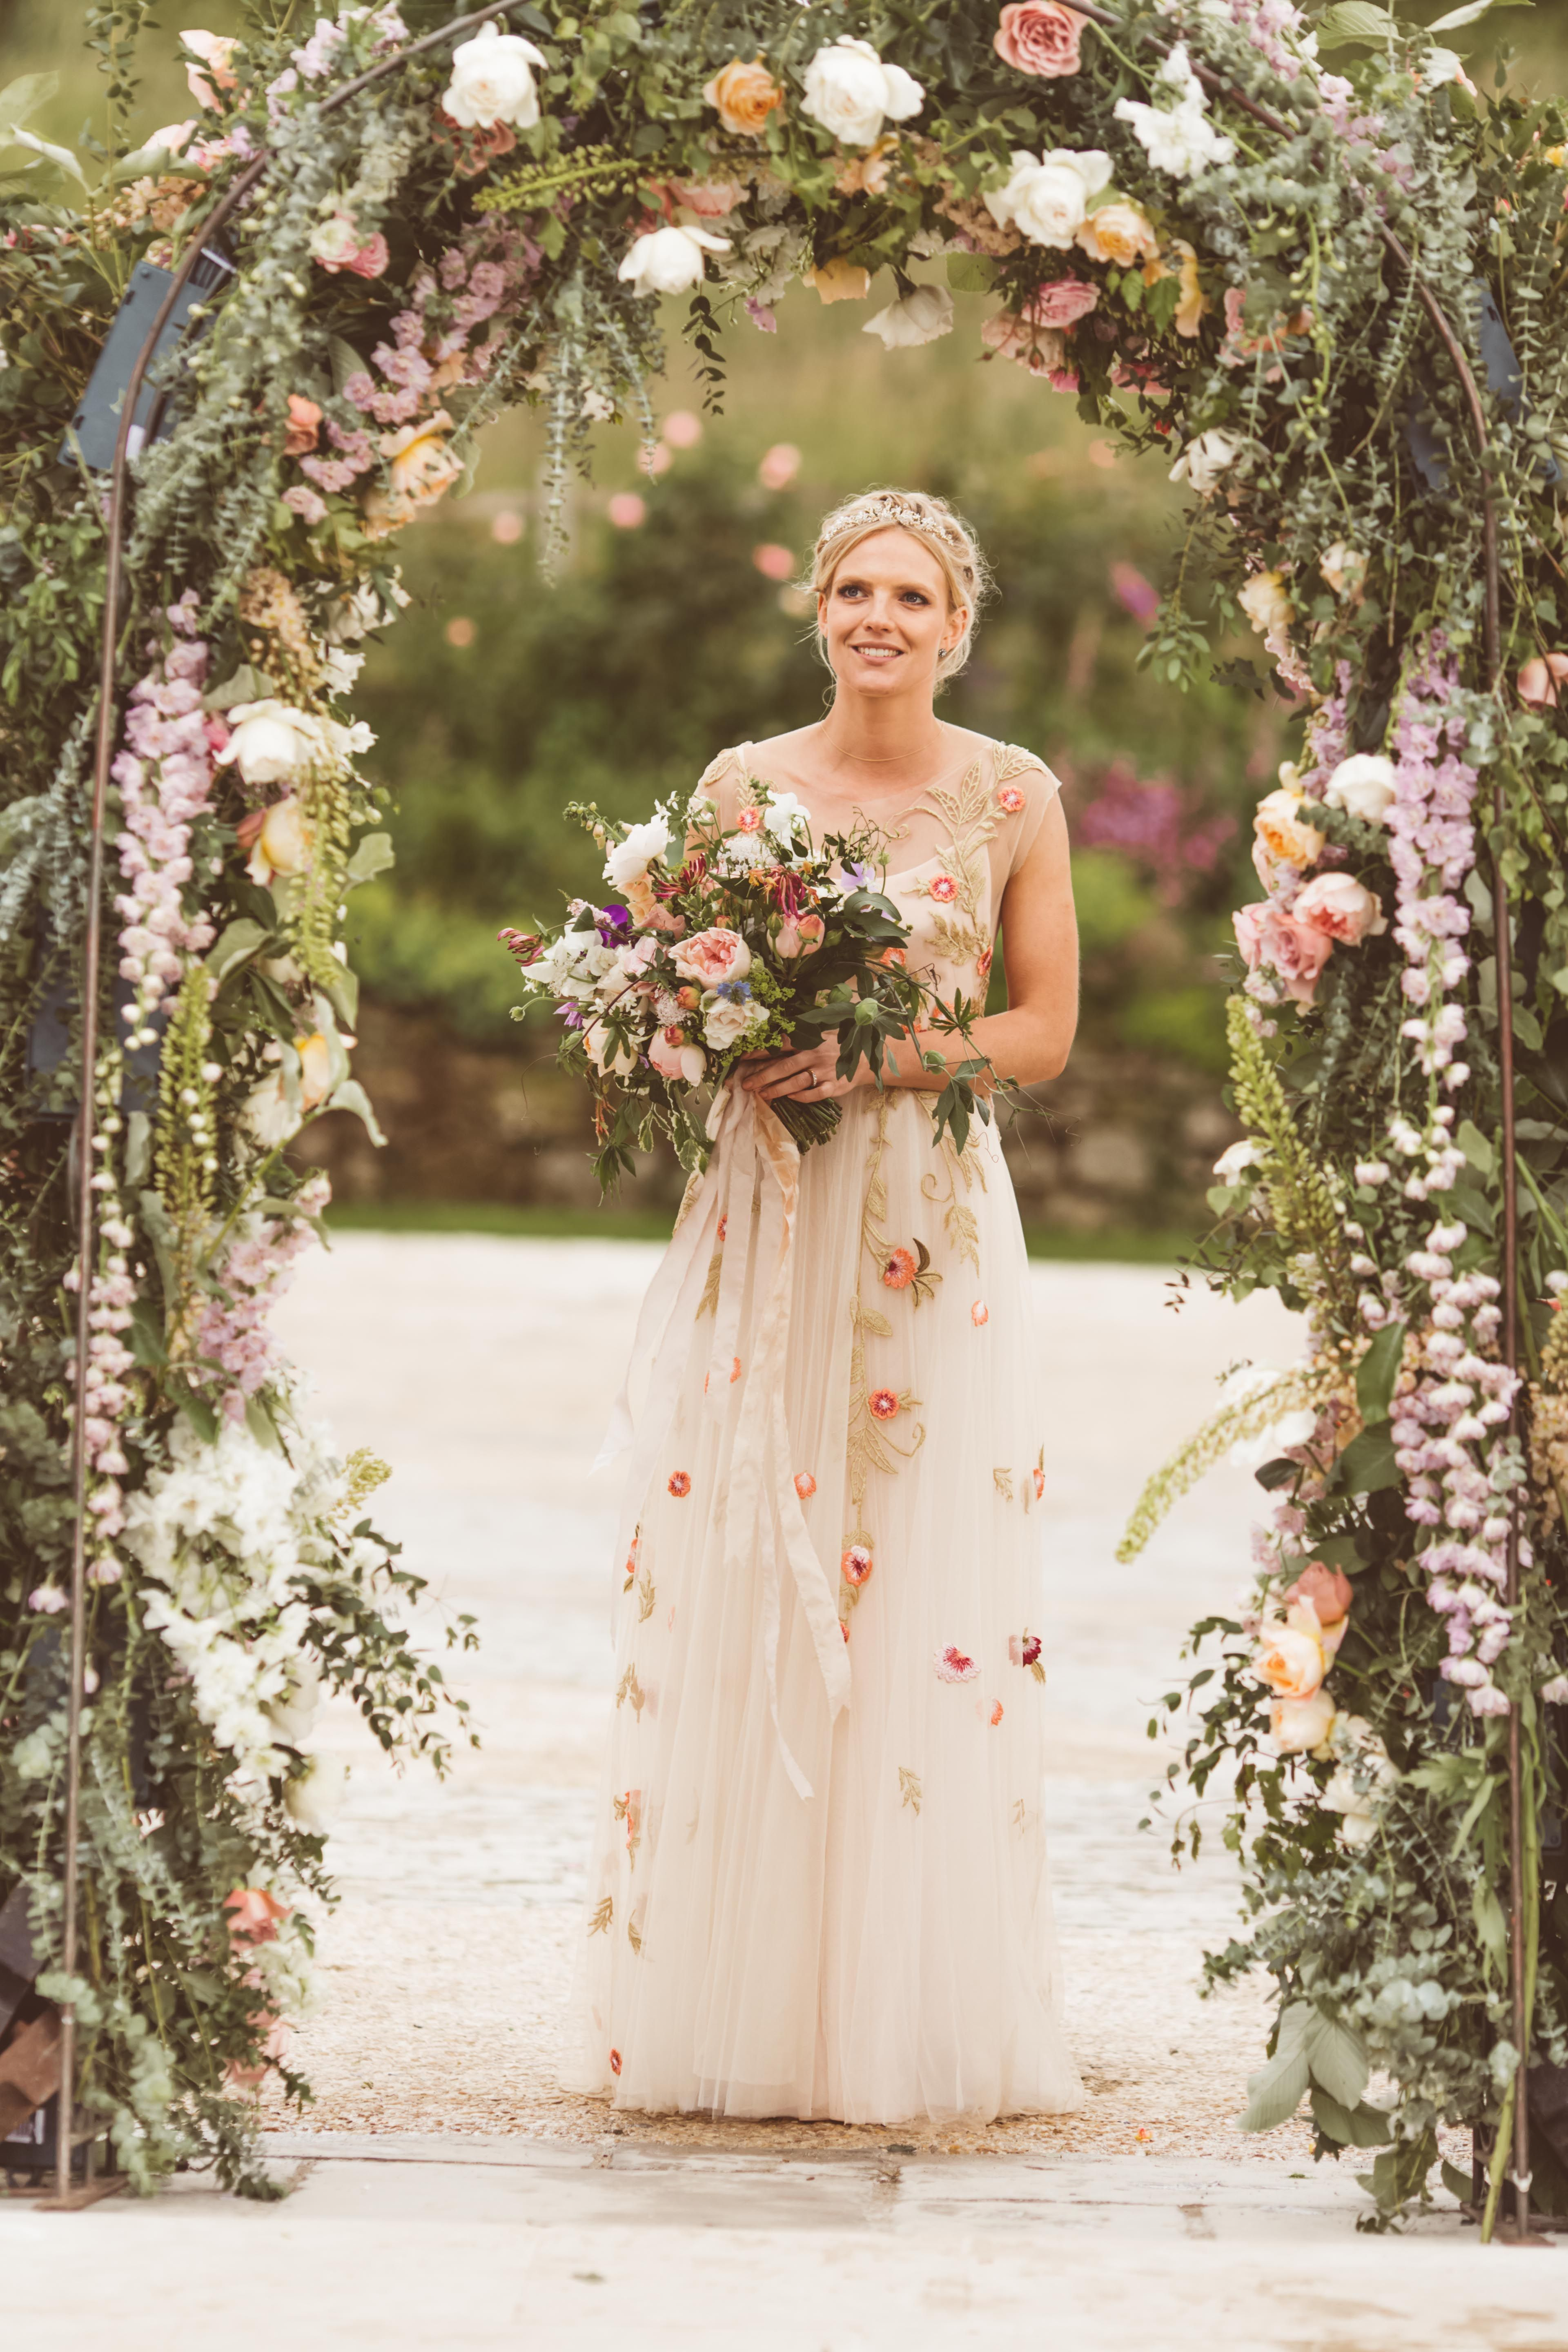 Gorgeous Picture Of One Of Our Brides In Her Festival Flowery Wedding Dress Weddingdressideas Floweryweddingdre Flowery Wedding Dress Wedding Dresses Bride